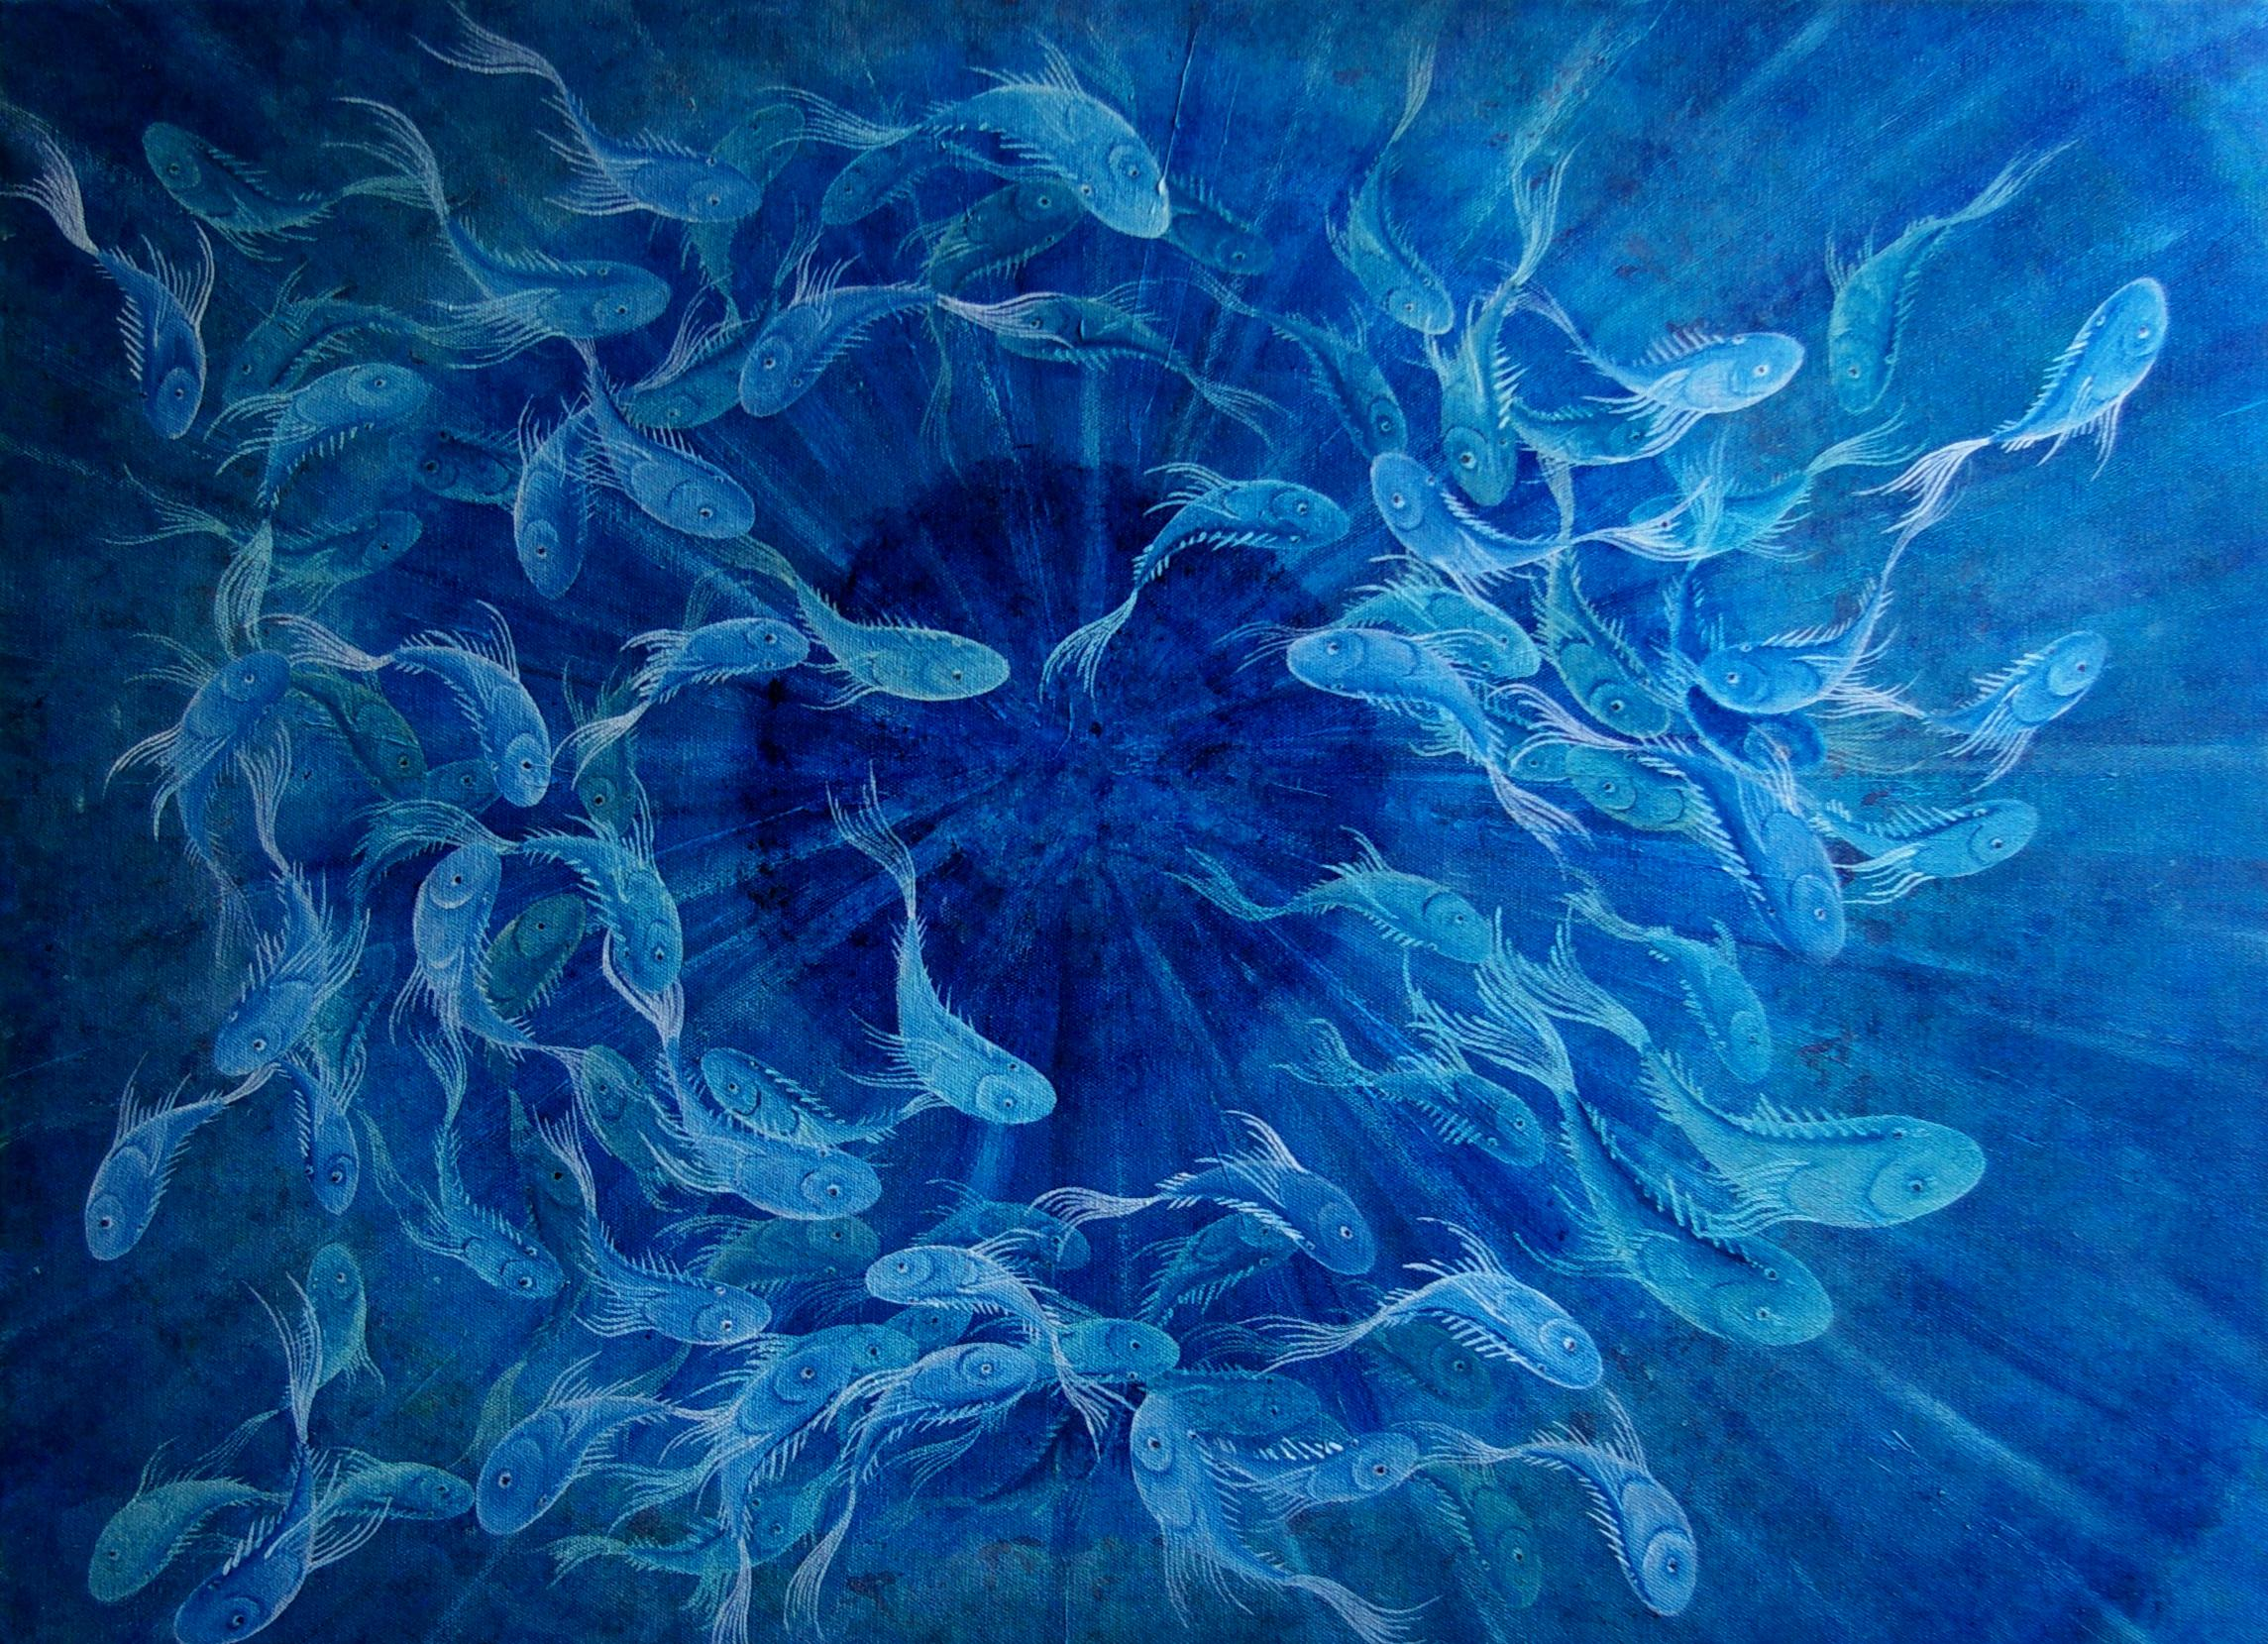 Ocean's Eye Oil on Canvas 2014 - (sold)